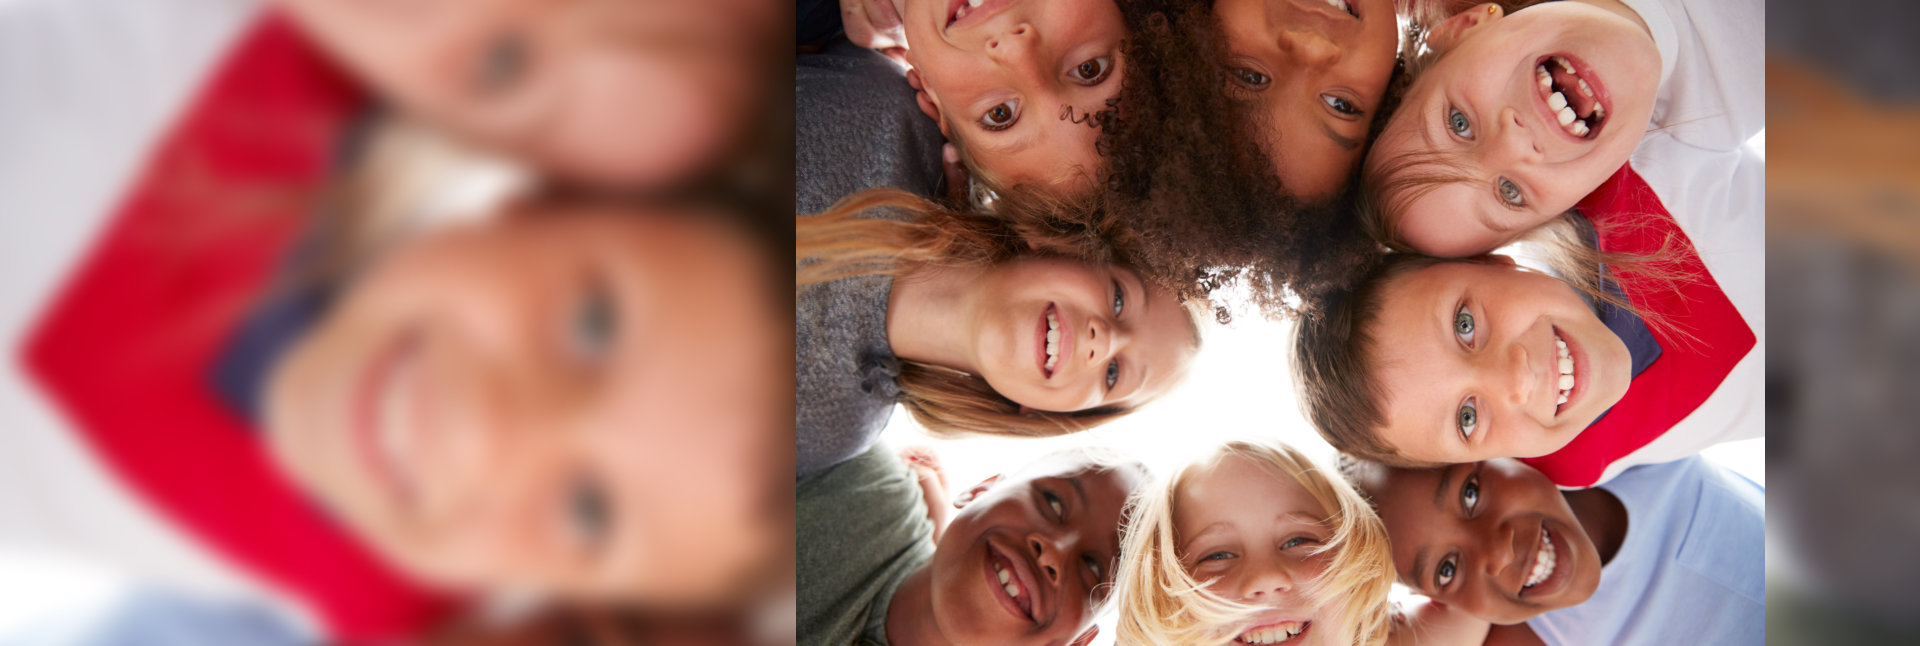 Group Of Multi-Cultural Children With Friends Looking Down Into Camera.